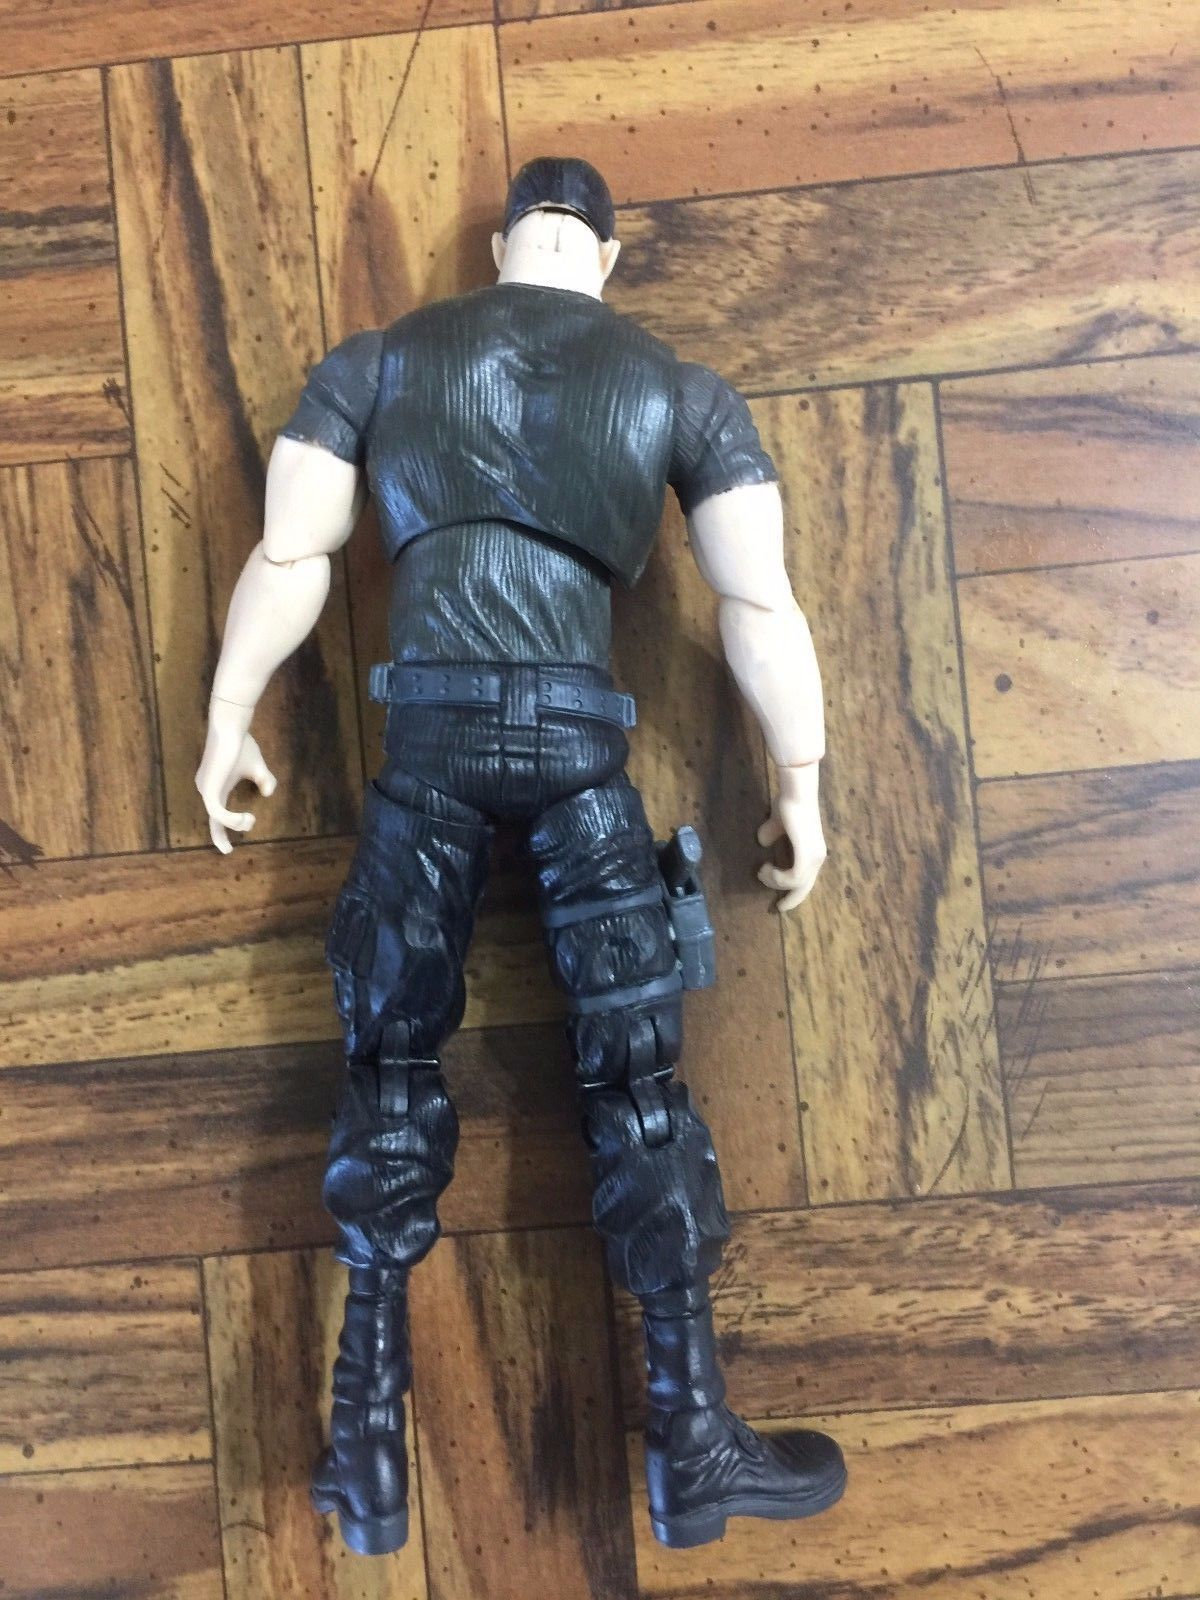 2007 Marvel Legends Hasbro Wal-Mart Excl PUNISHER w/Gun Action Figure Loose